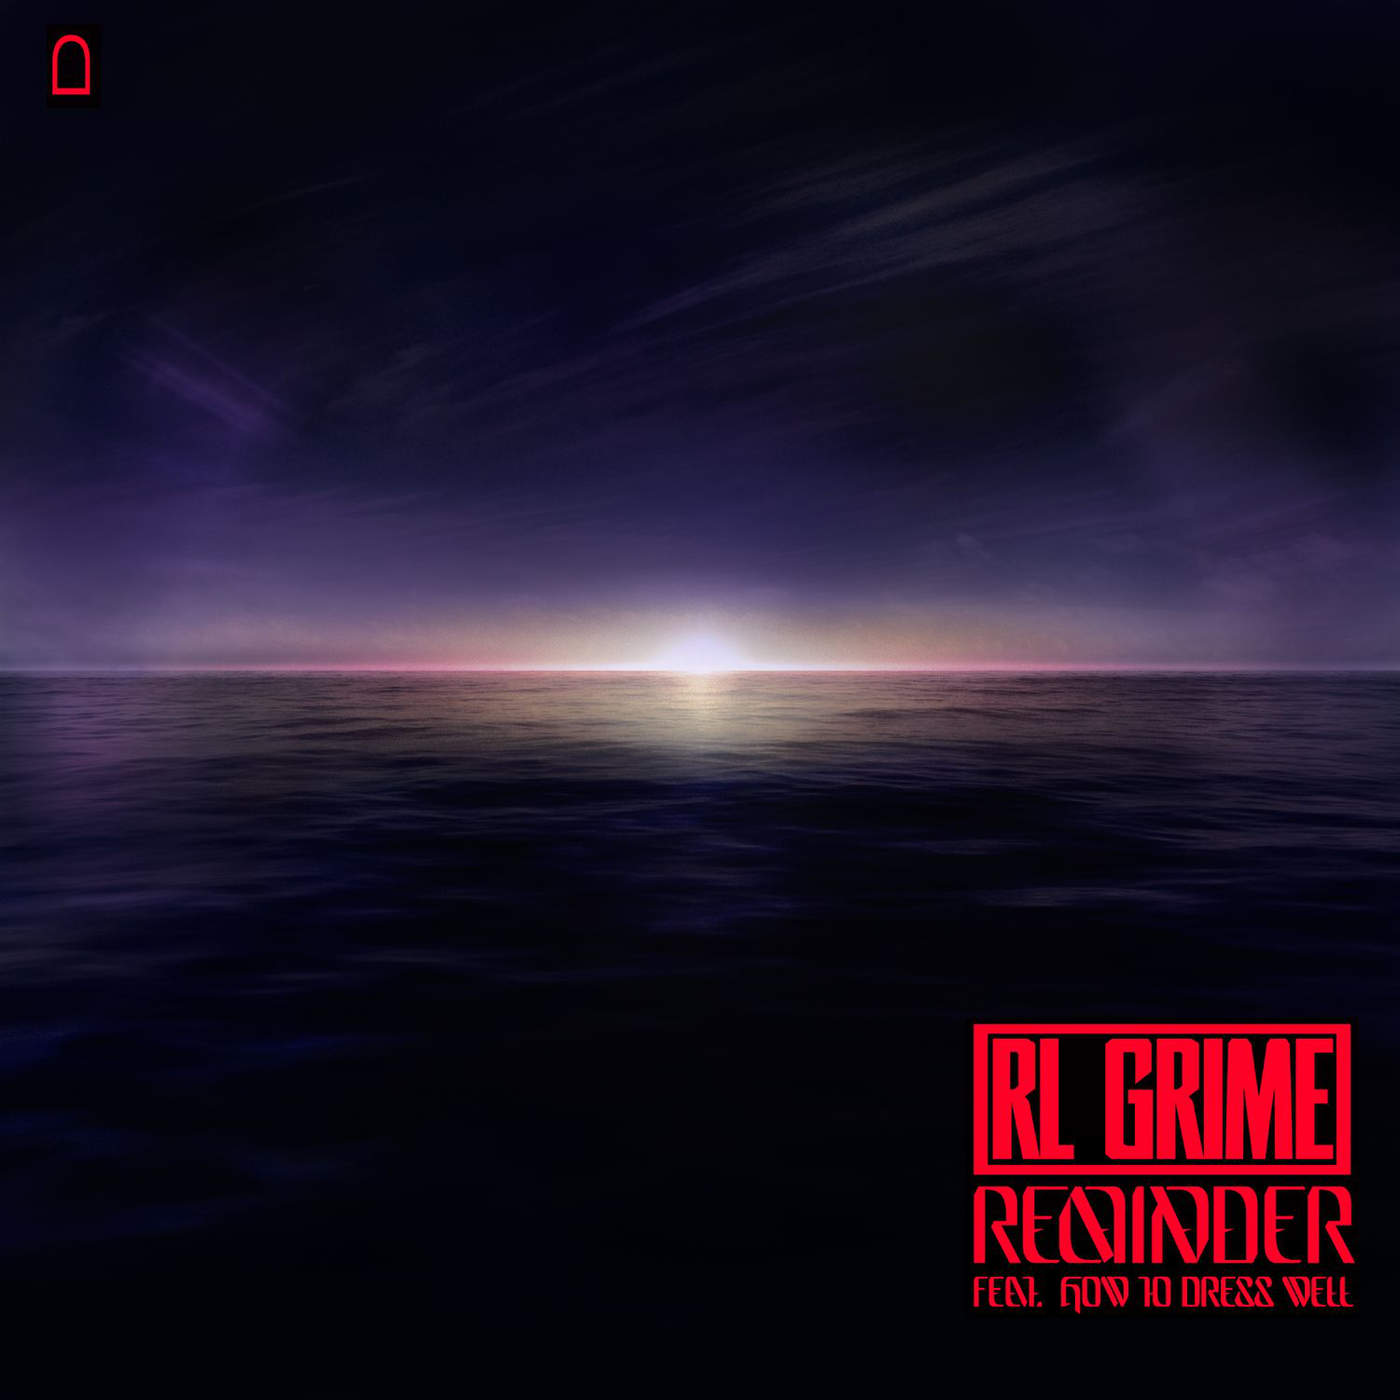 RL Grime - Reminder (feat. How To Dress Well) - Single Cover